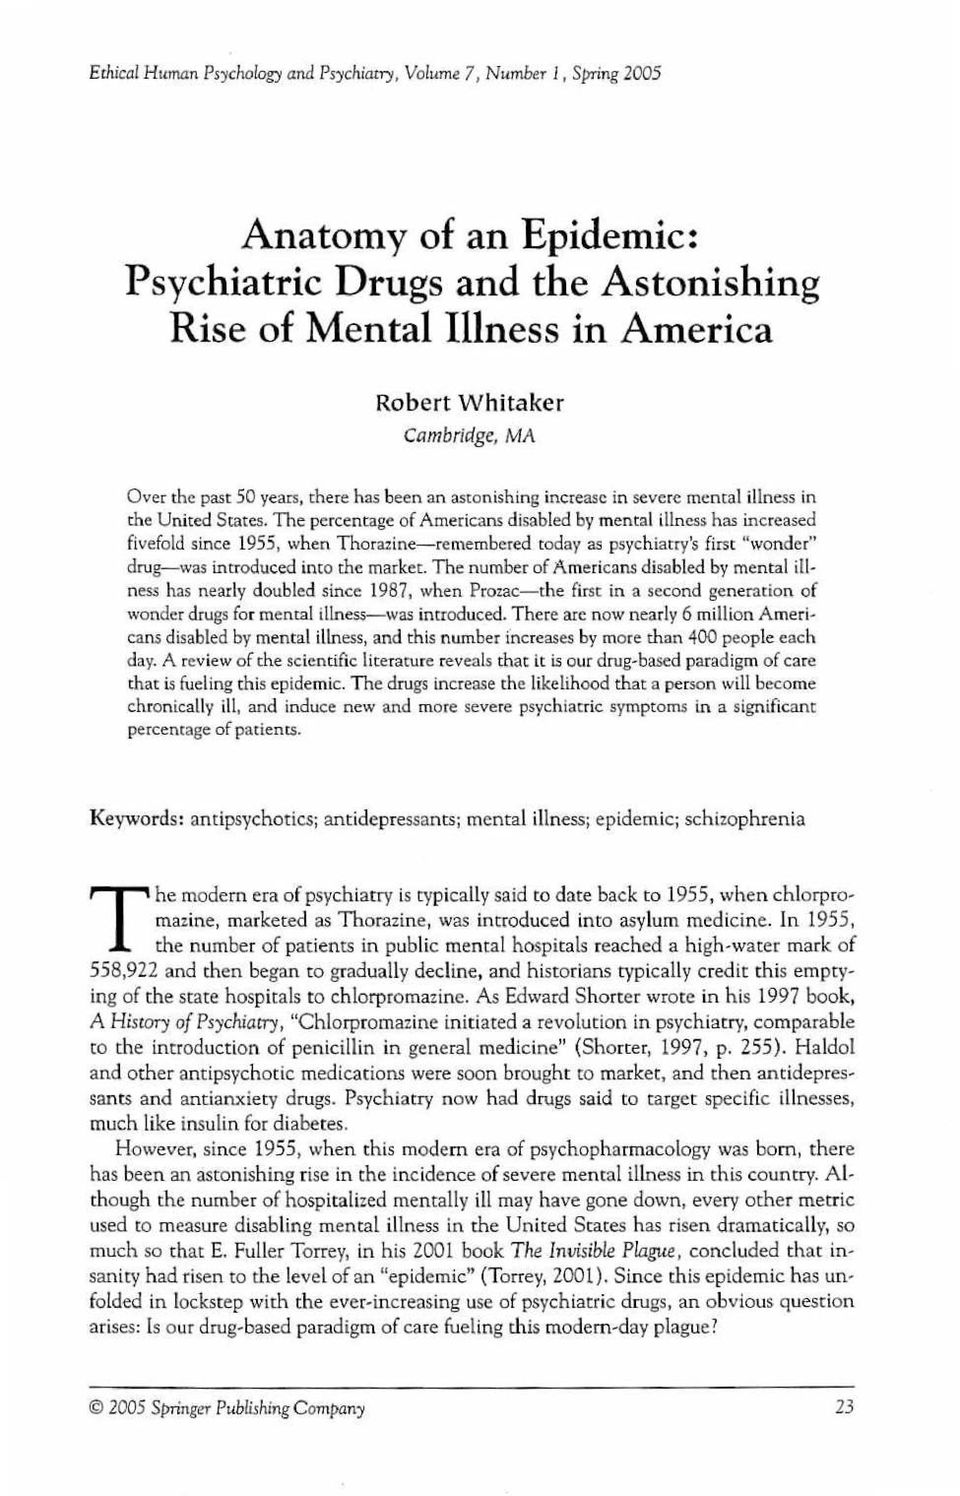 "The percentage of Americans disabled by mental illness has increased fivefold since 1955, when Thorazine-remembered today as psychiatry's first ""wonder"" drug-was introduced into the market."